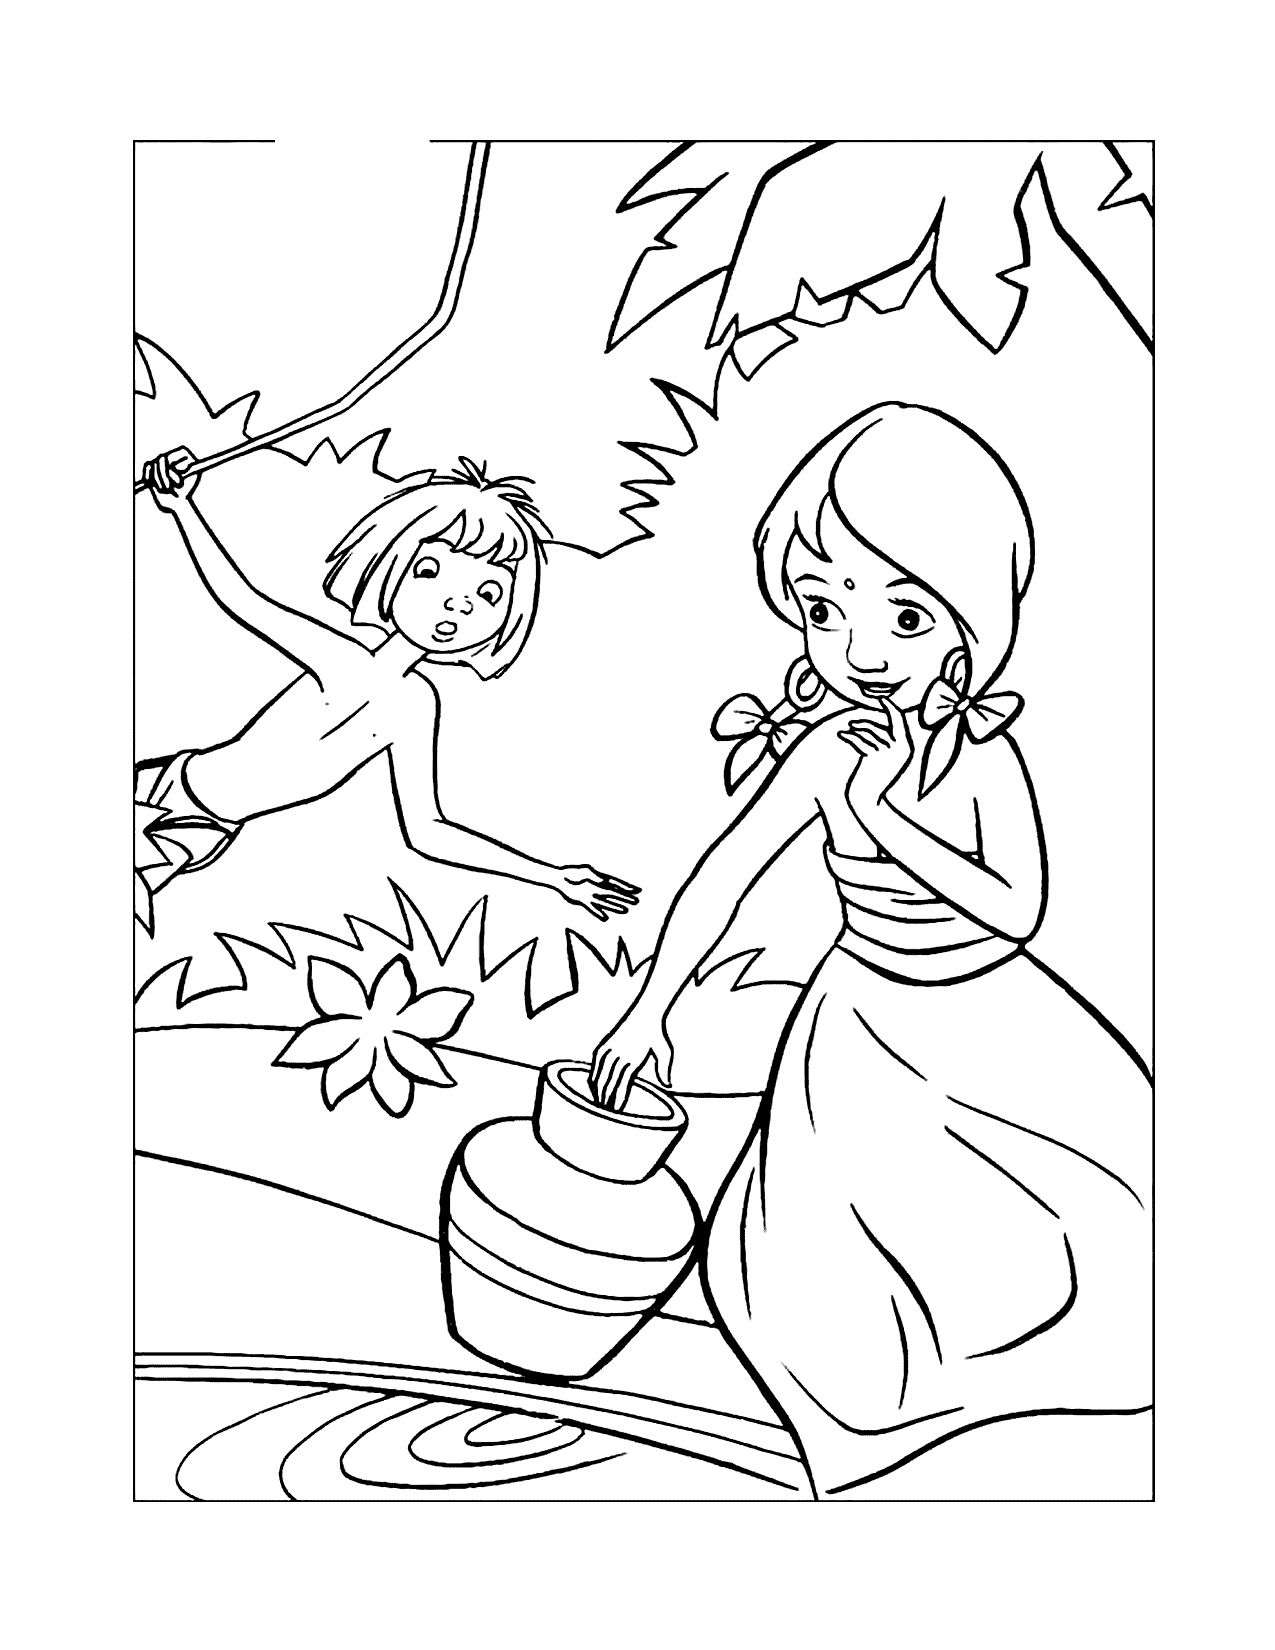 Mowgli Meets Shanti Jungle Book Coloring Pages